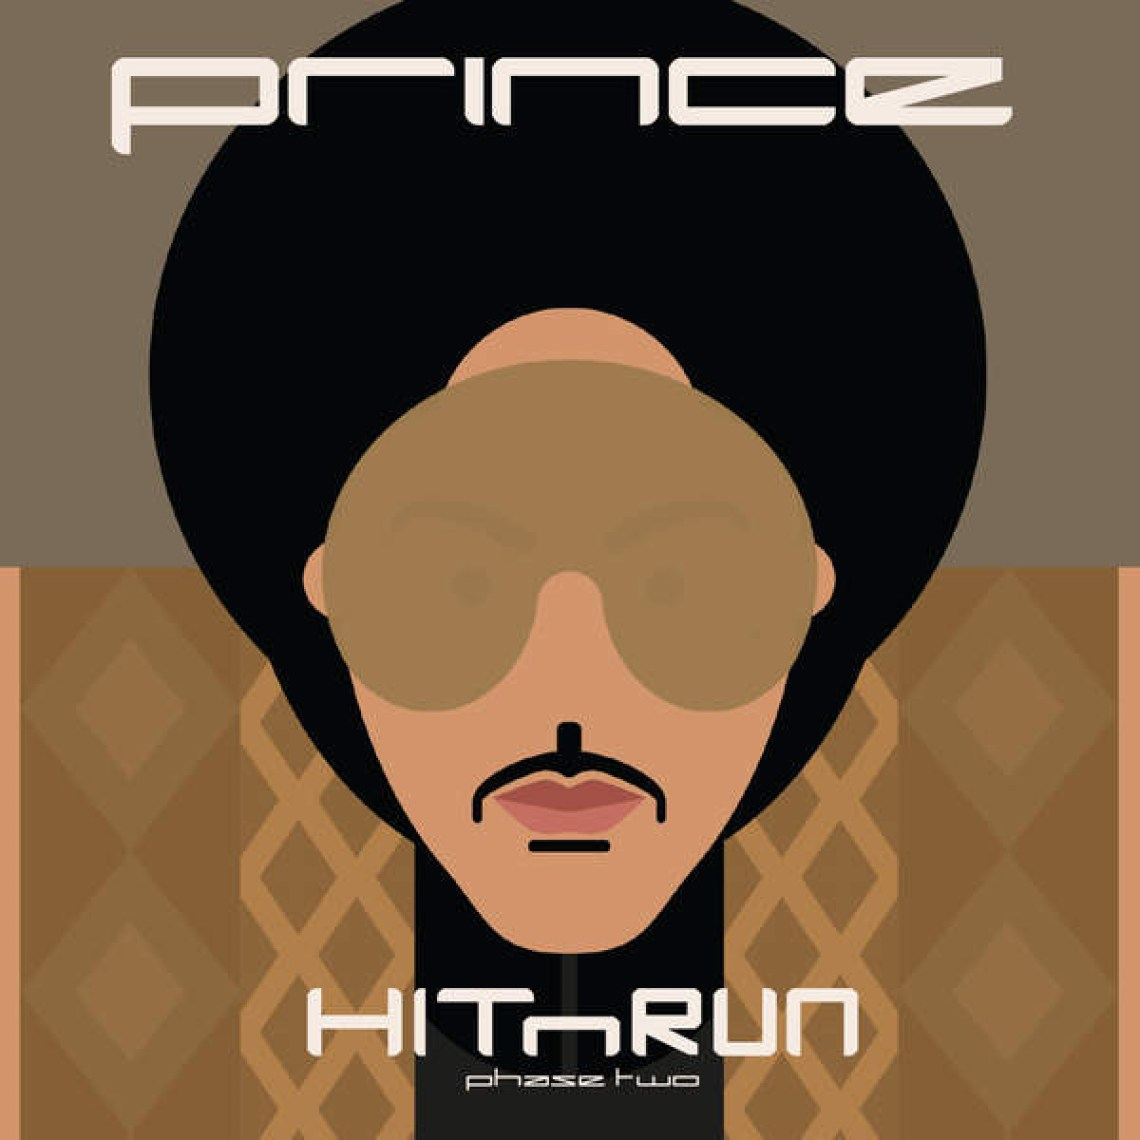 The Legend Slot: Prince - HITNRUN Phase Two (2015)